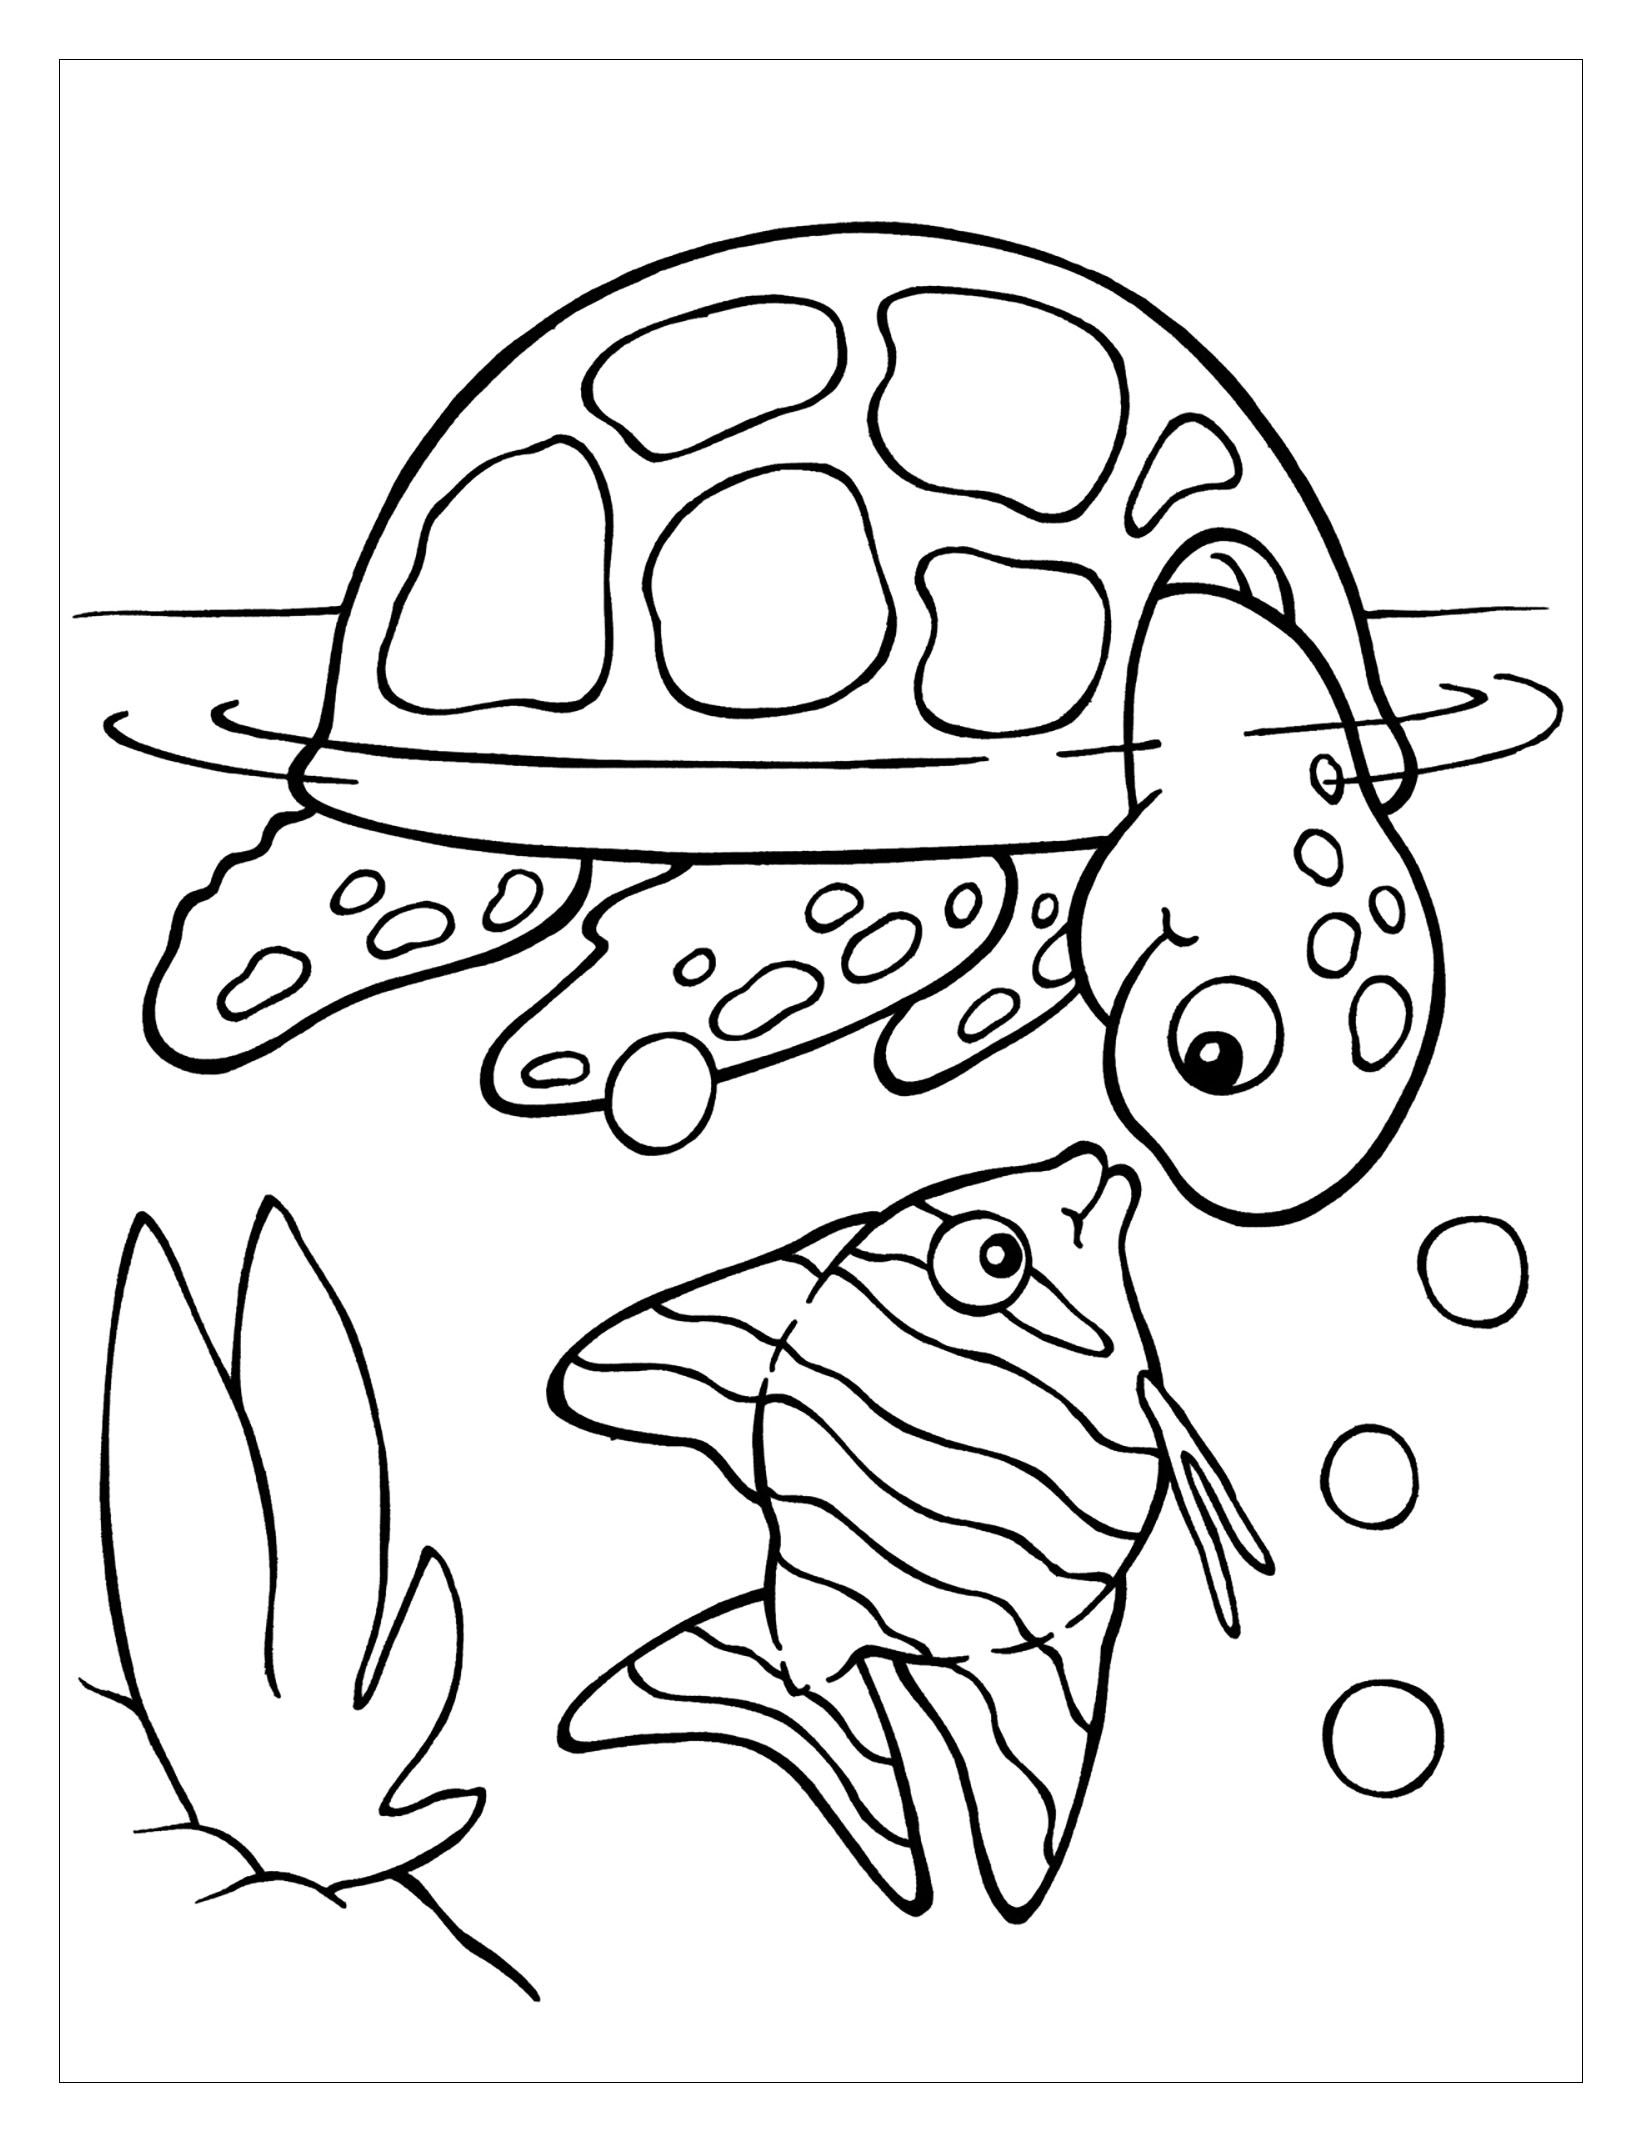 full size coloring sheets 10 toothy adult coloring pages printable off the cusp full sheets coloring size